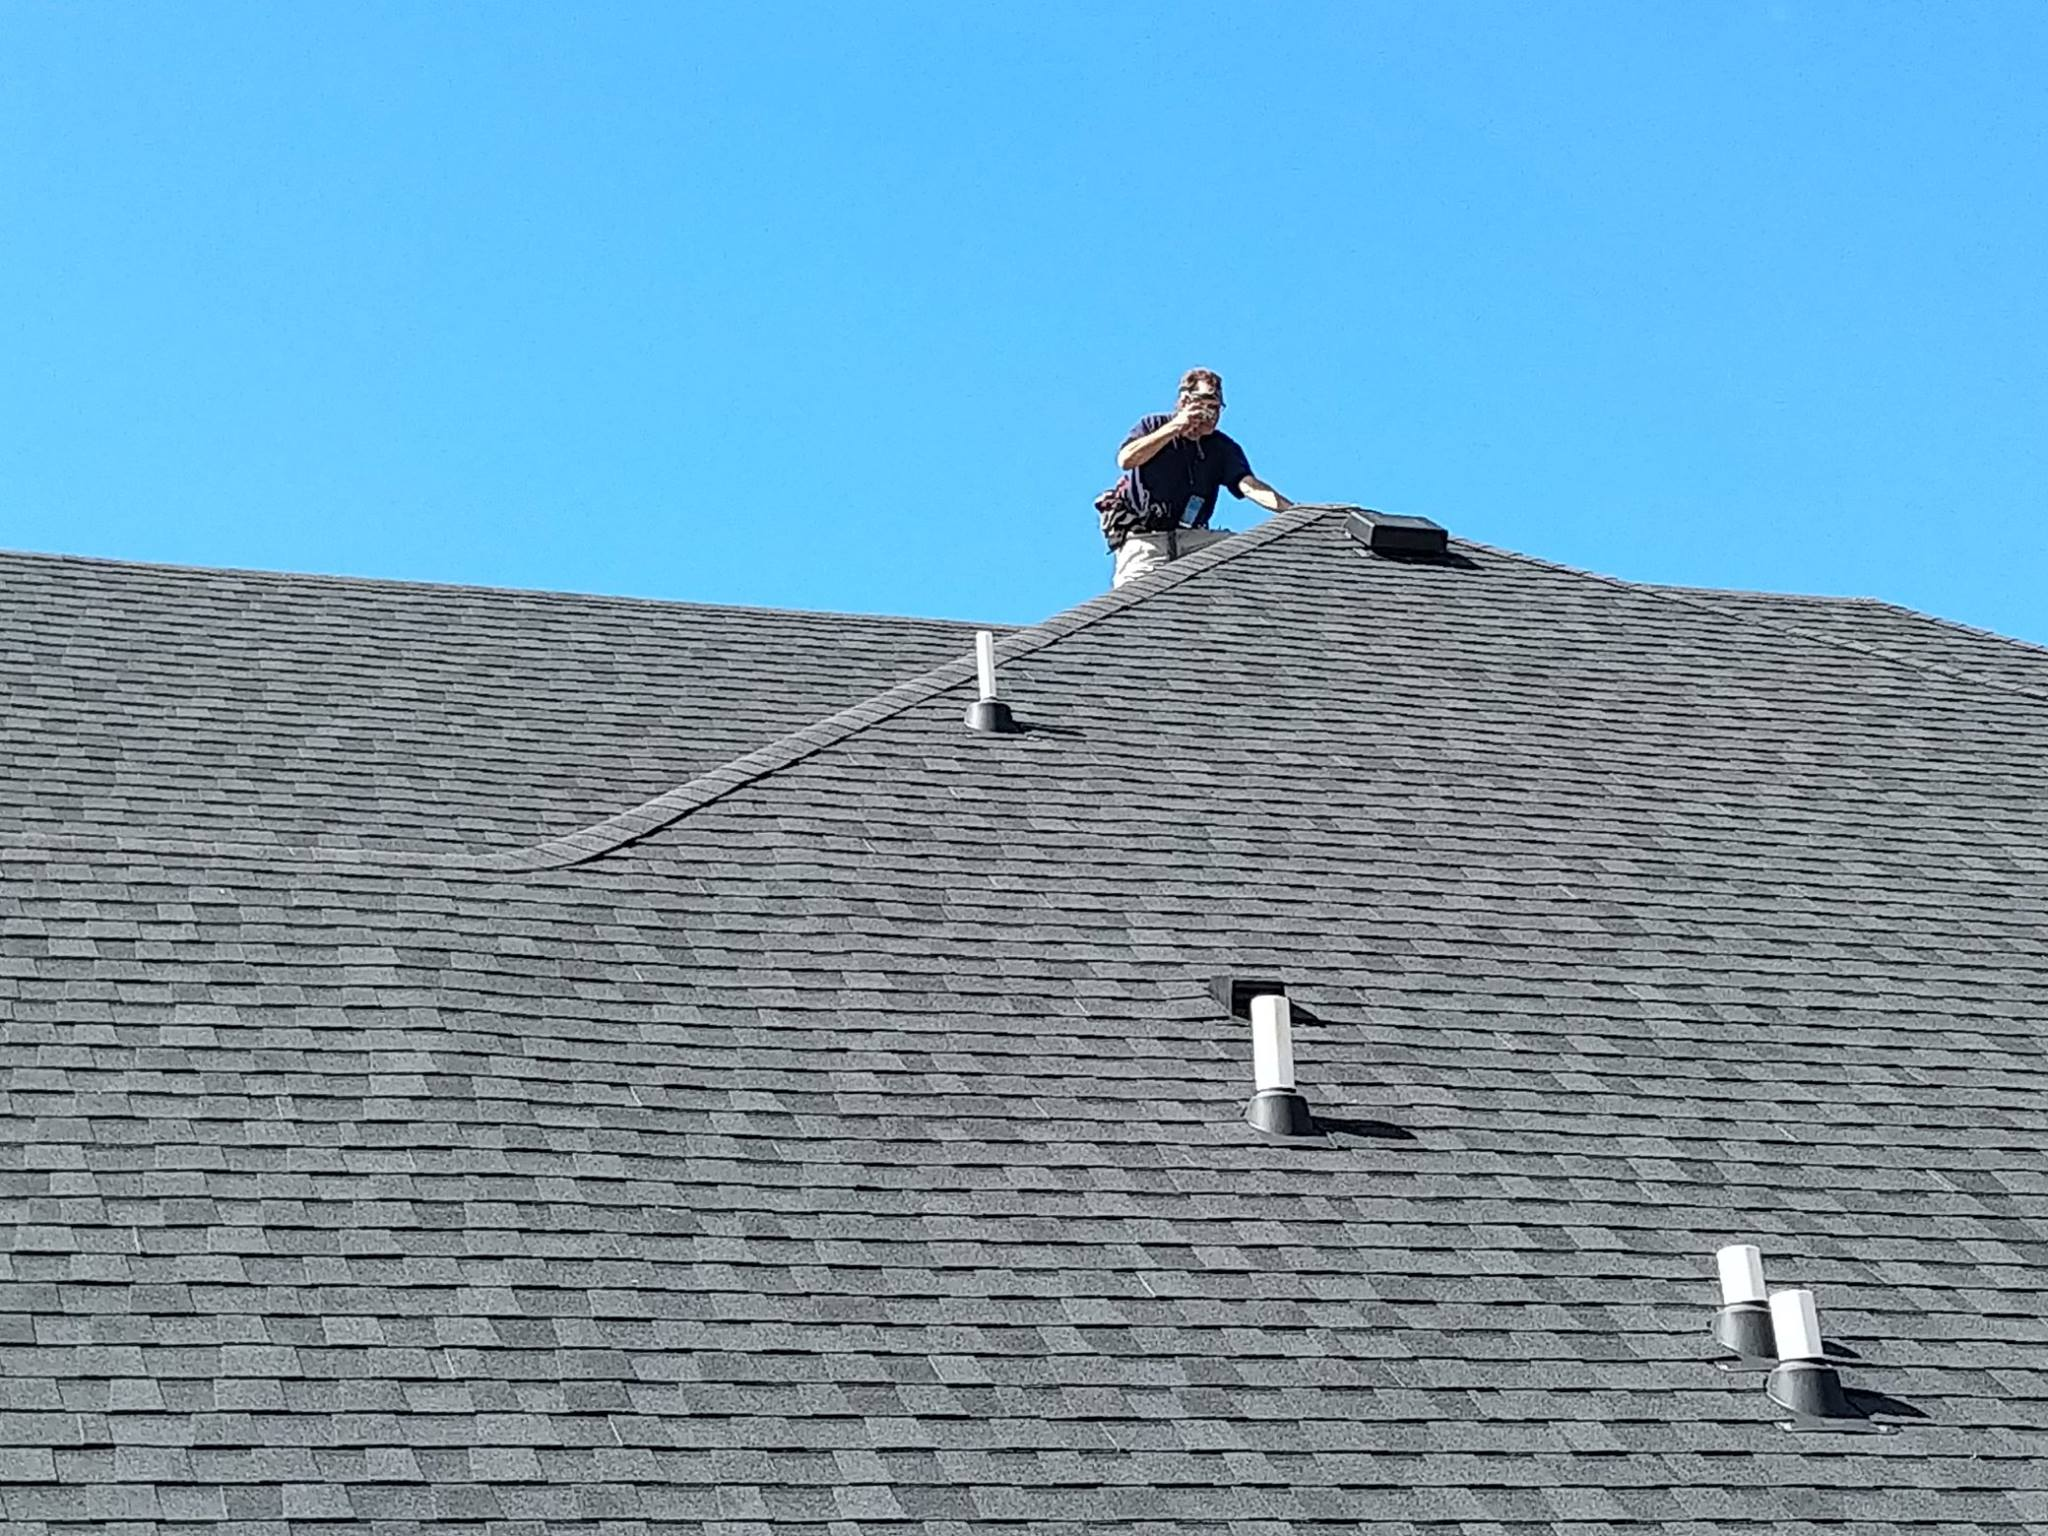 When Climbing Steep Roofs